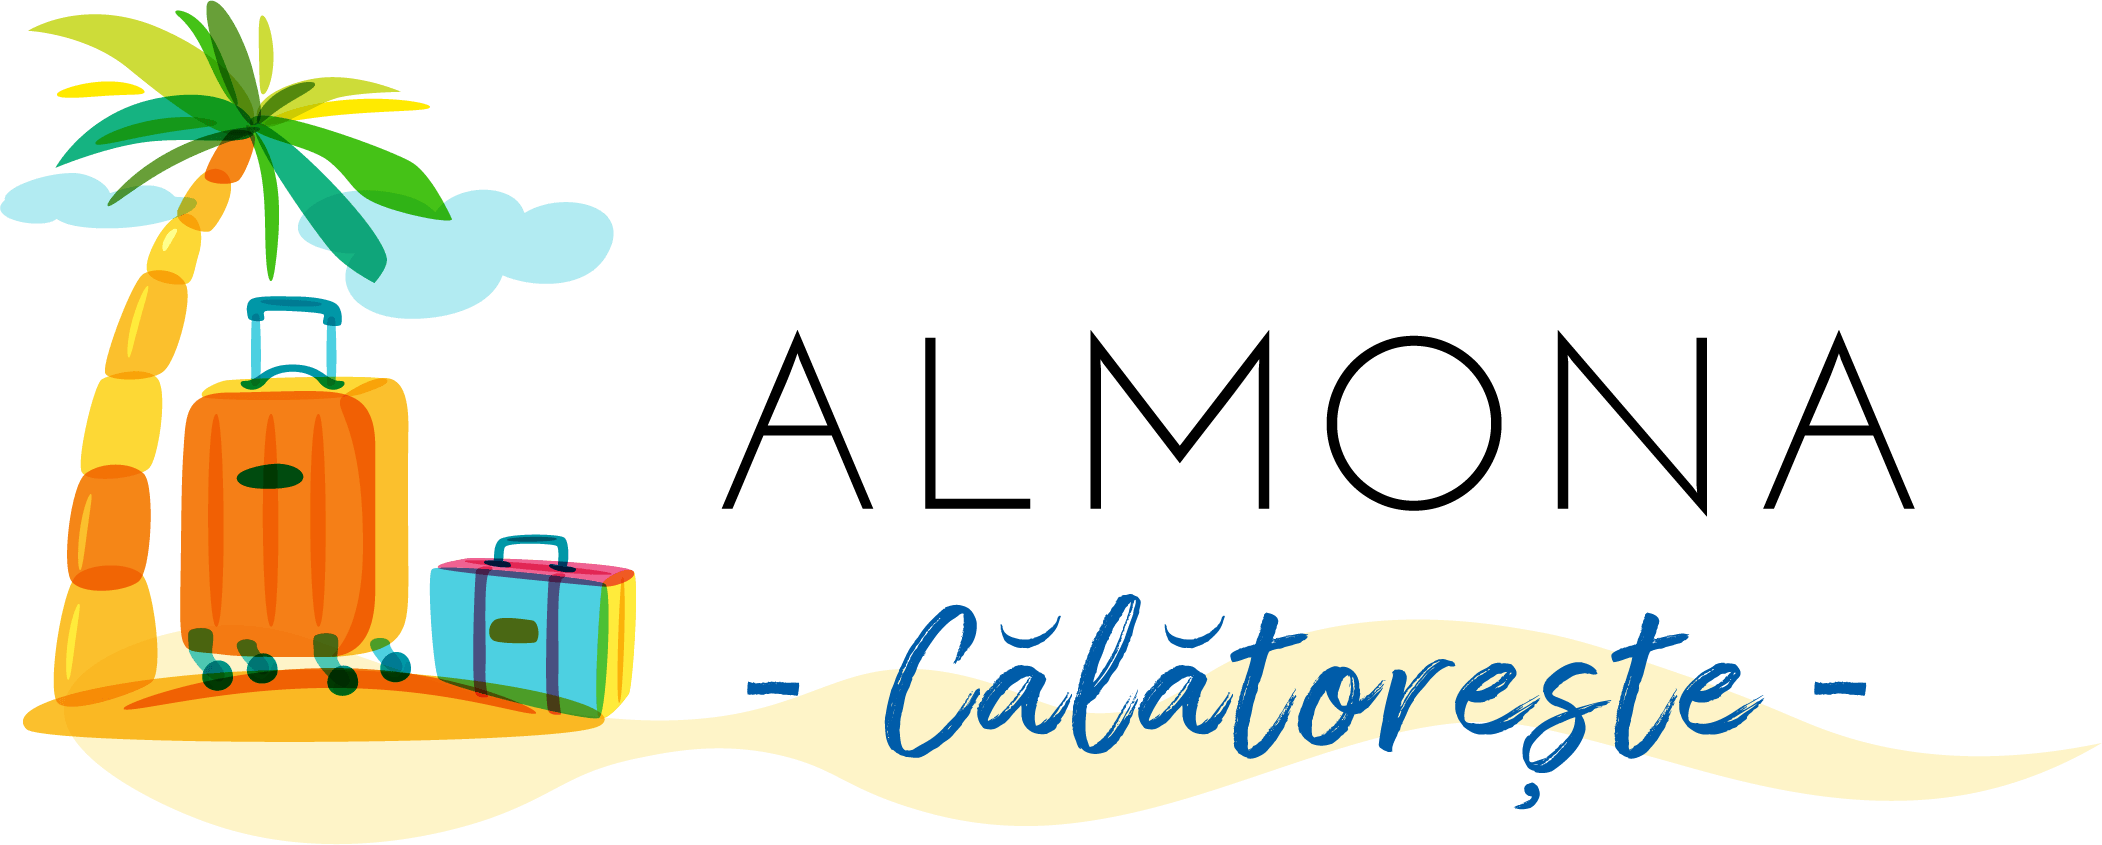 almona calatoreste